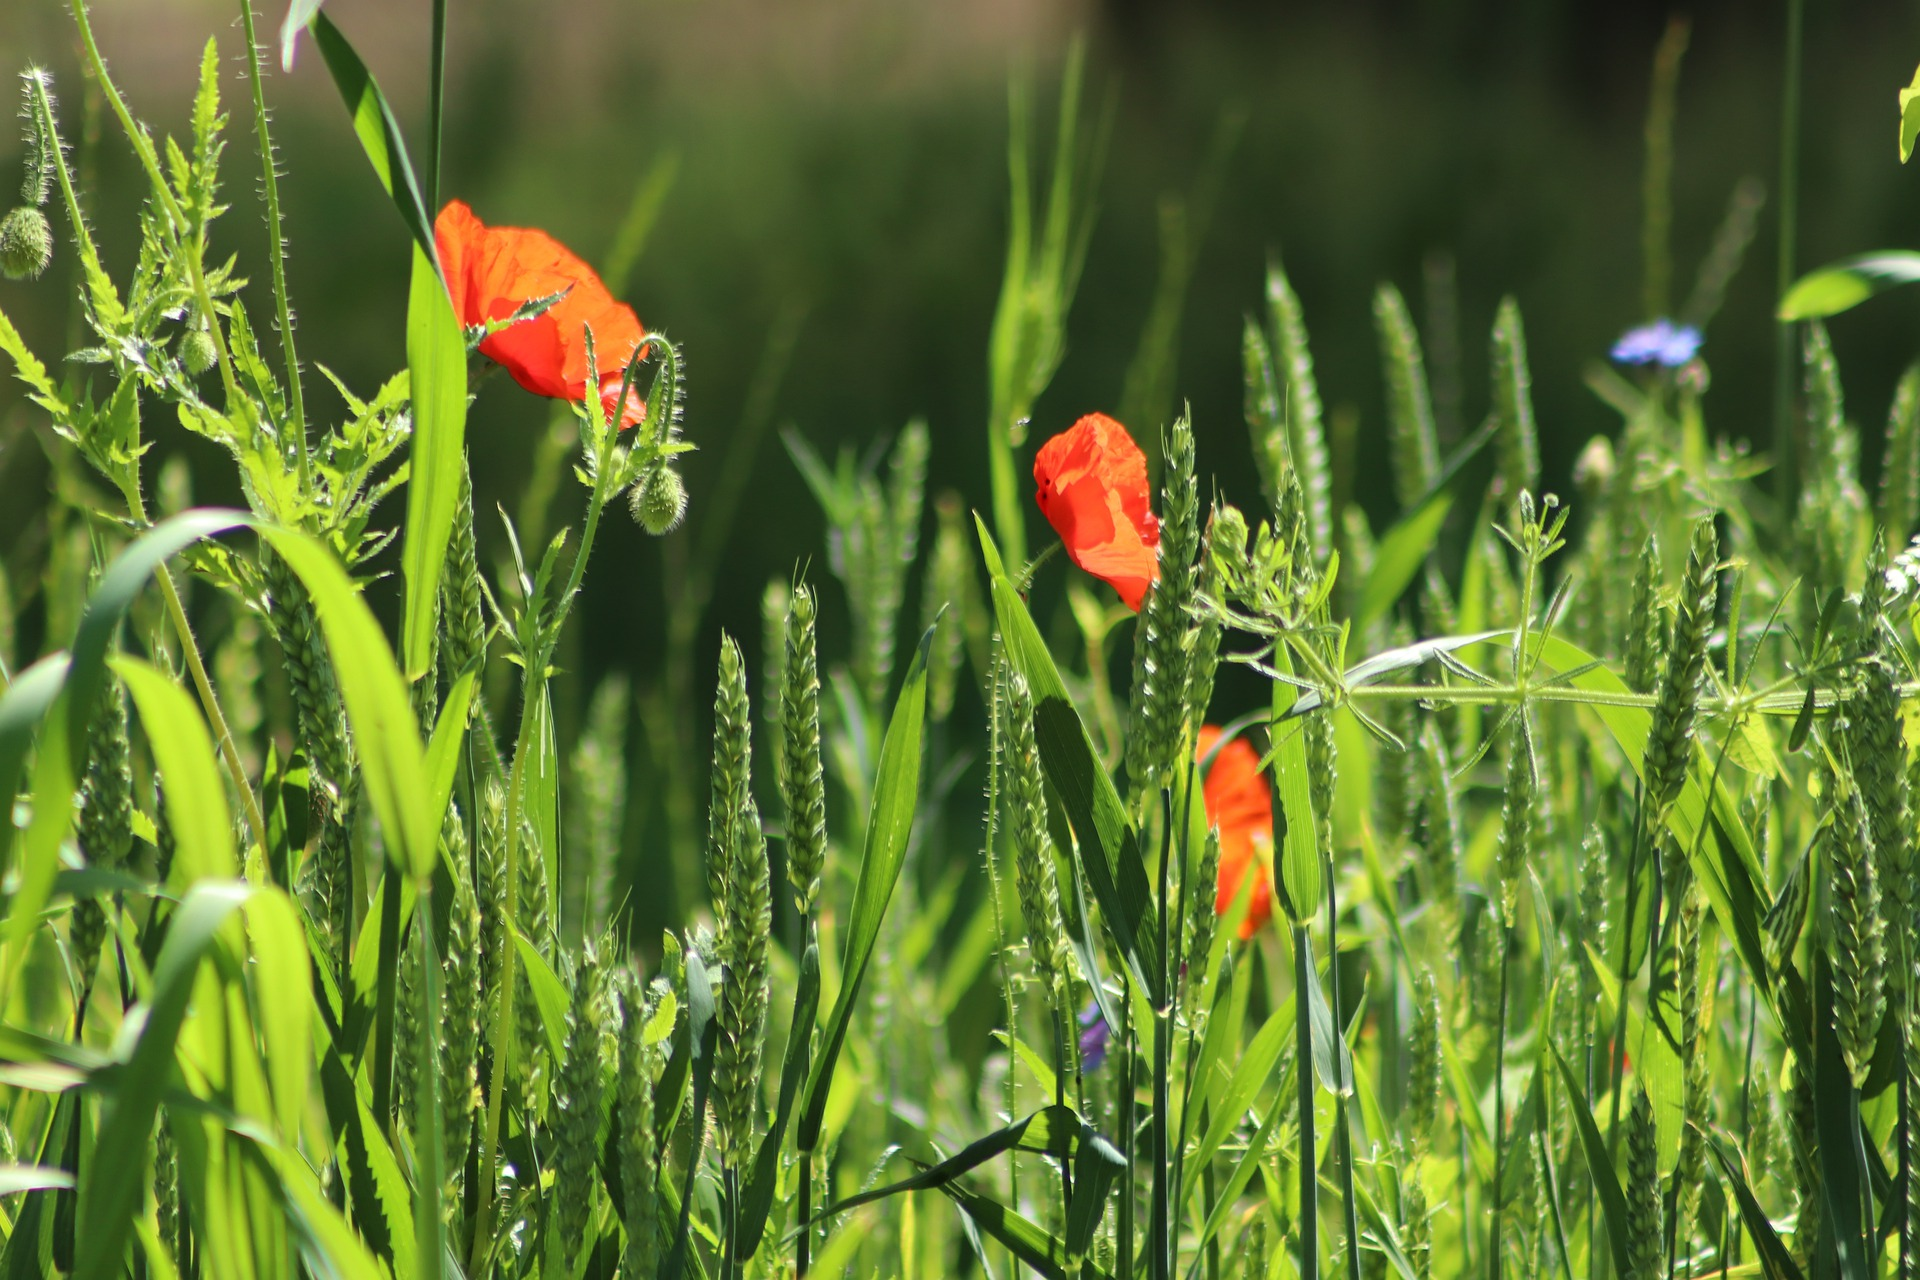 poppies-5286127_1920 (c) Pixabay.com